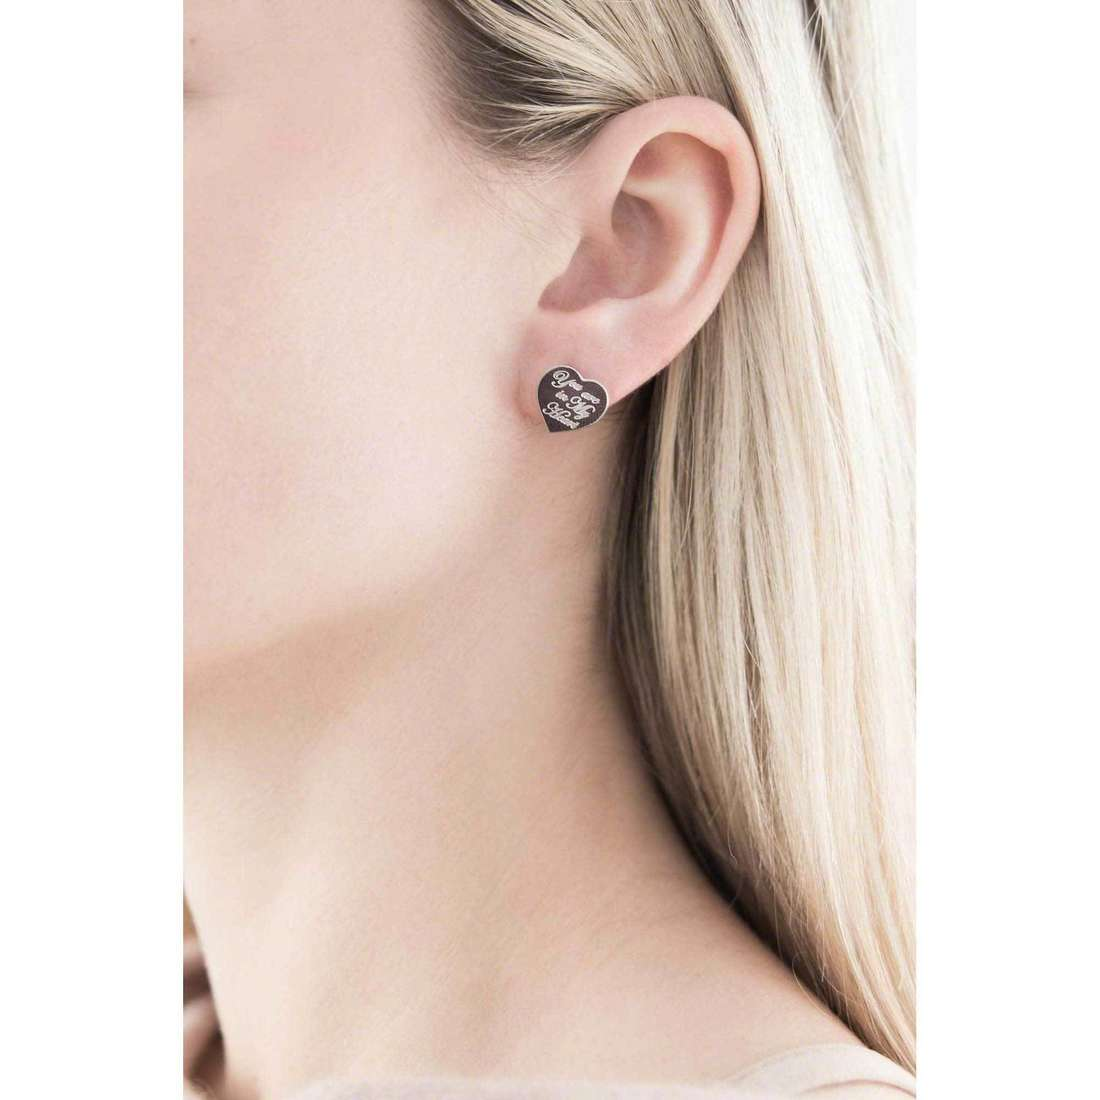 Nomination boucles d'oreille Sweetheart femme 026130/014 indosso